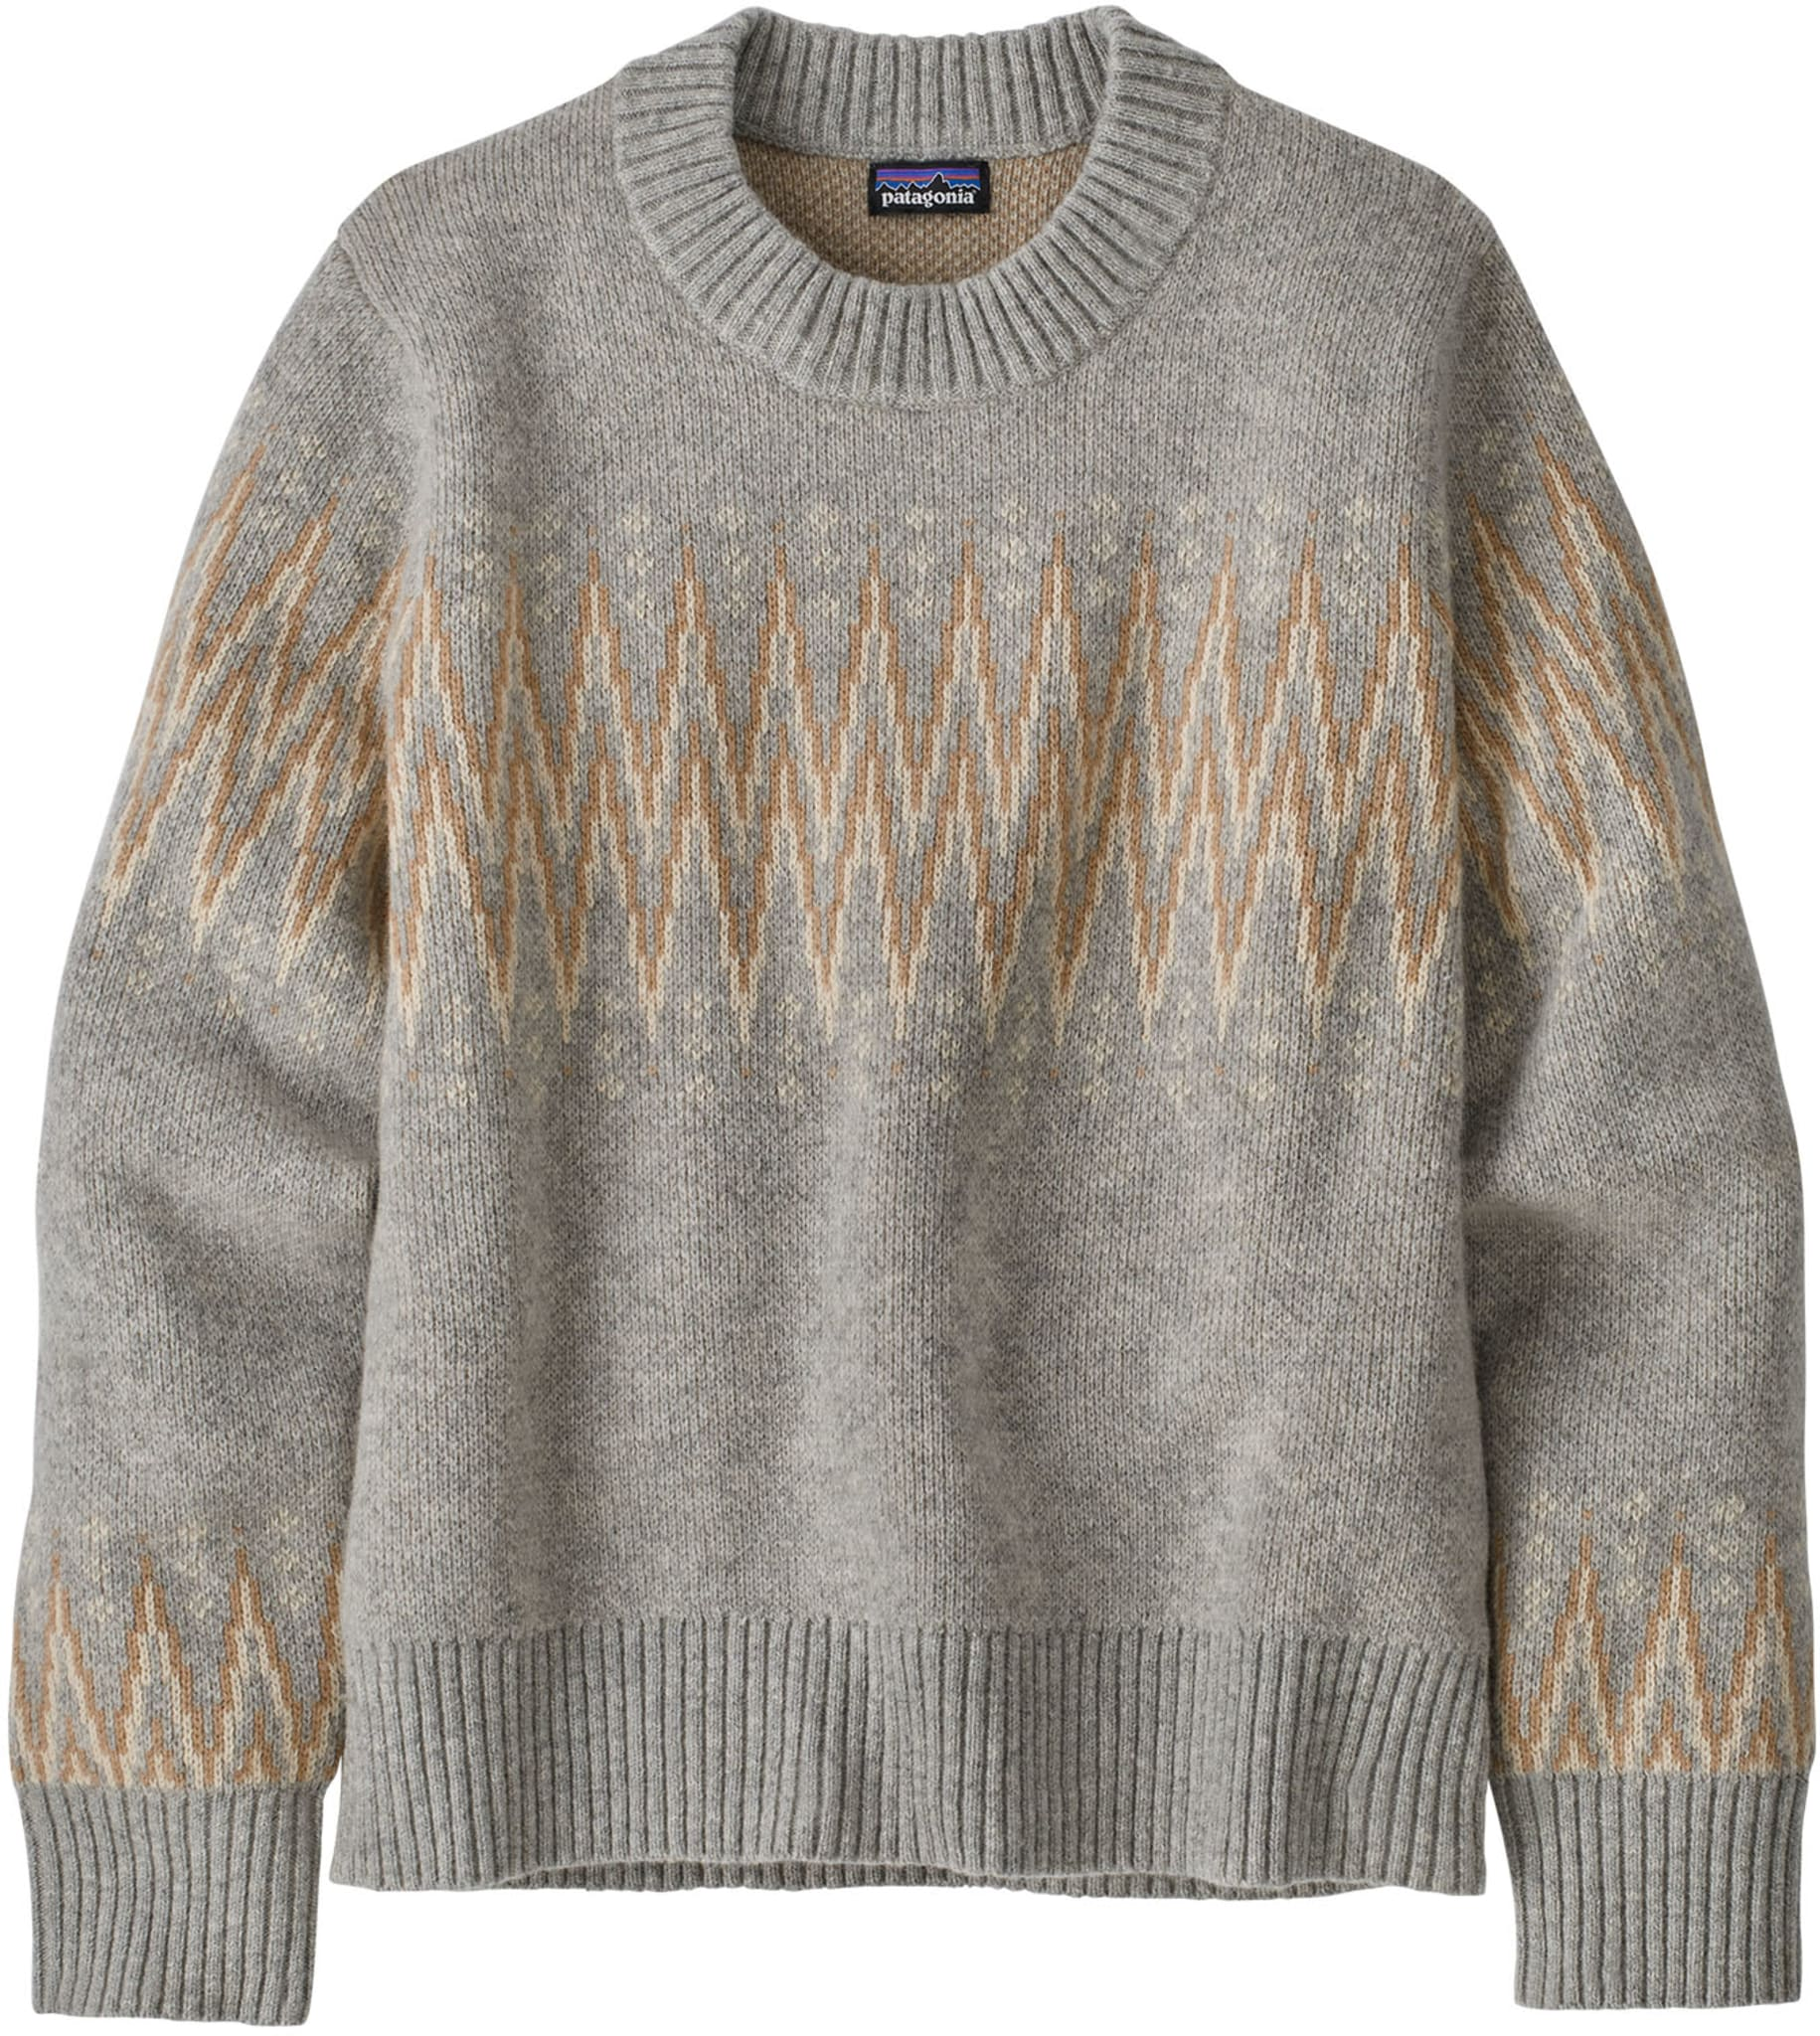 Recycled Wool Crewneck Sweater Ws